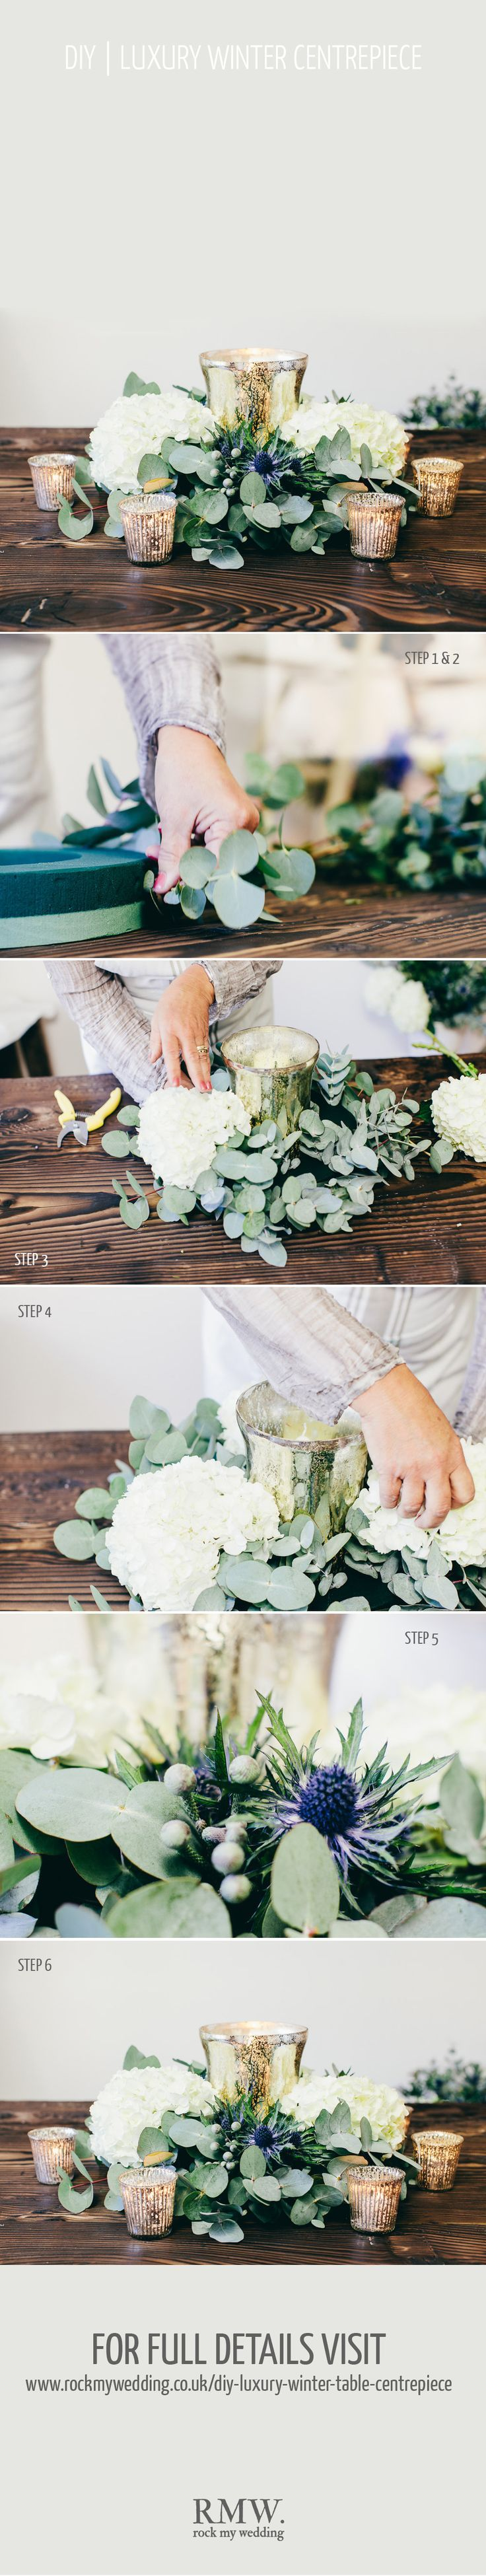 A floral diy tutorial showing you how to create a luxury winter